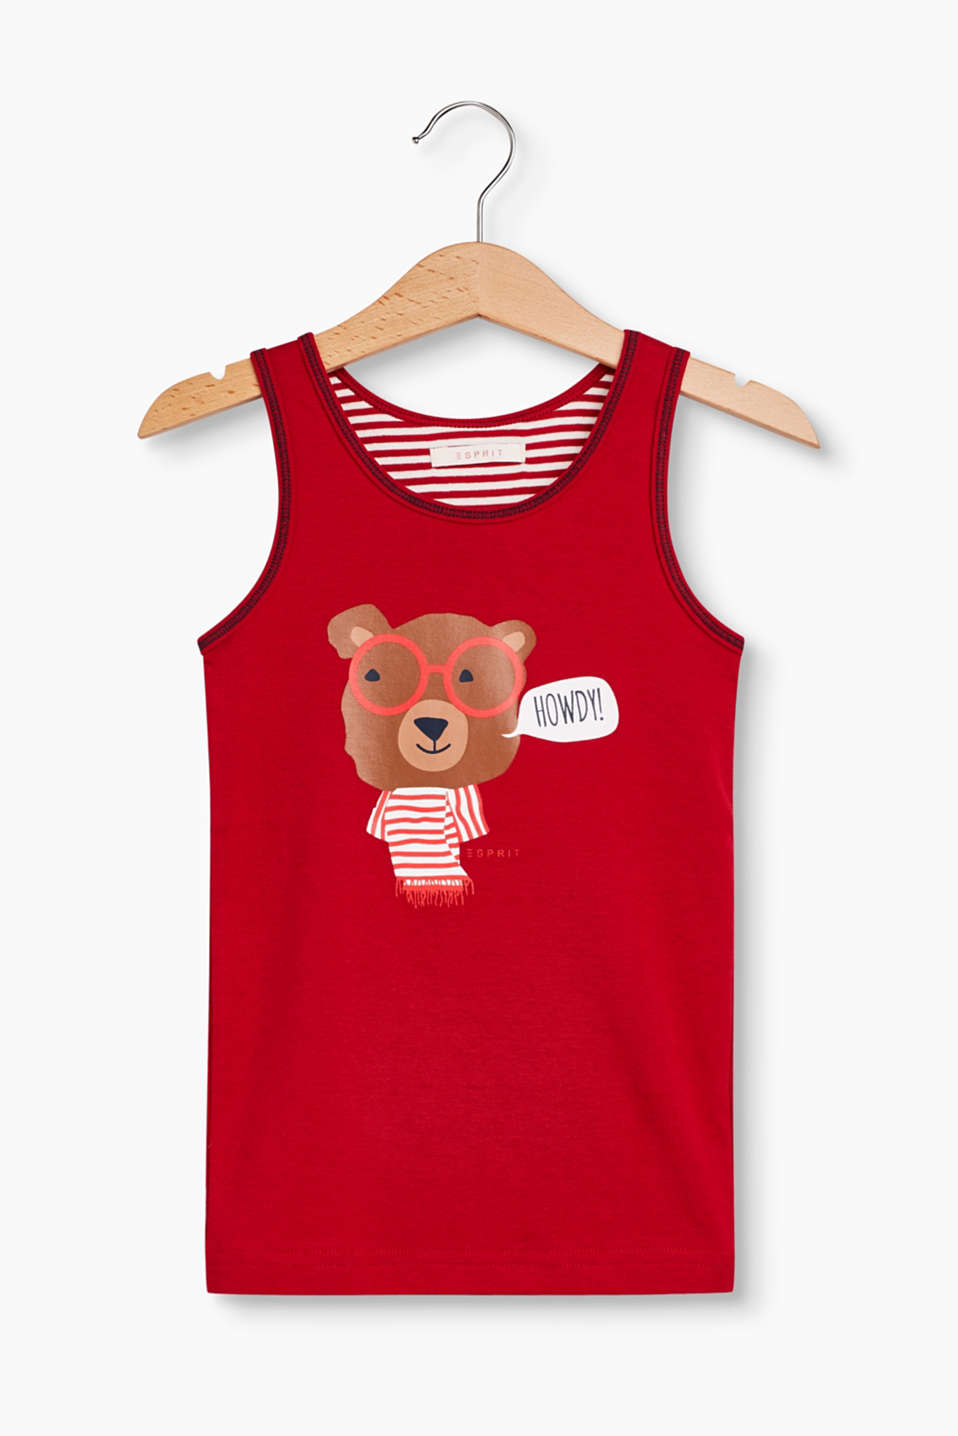 With an adorable little bear print: vest top made of soft cotton-jersey